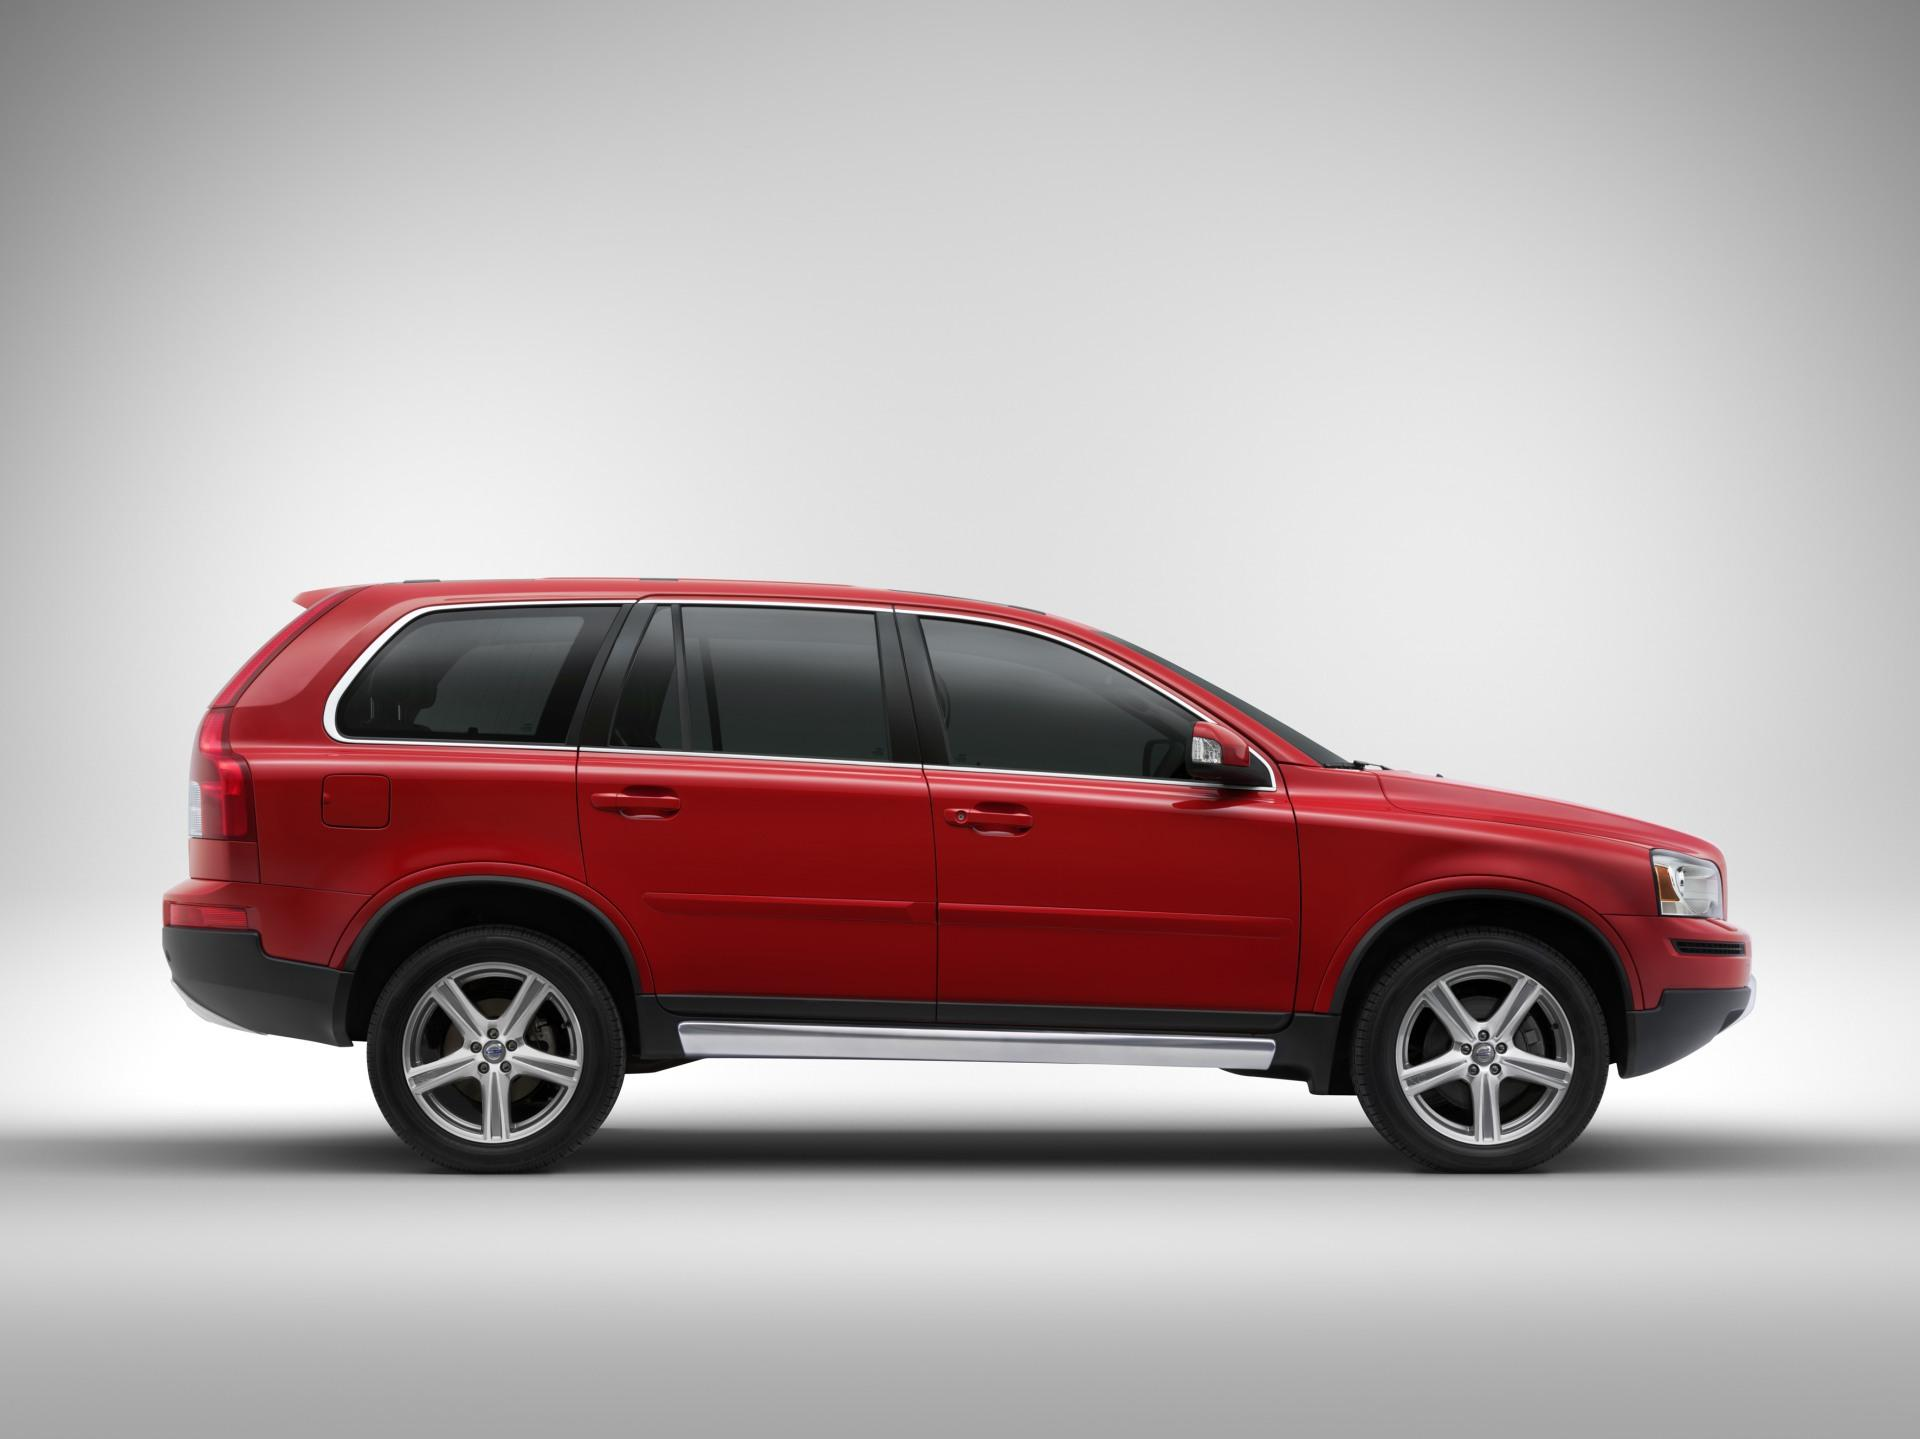 2010 Volvo XC90 News and Information - conceptcarz.com